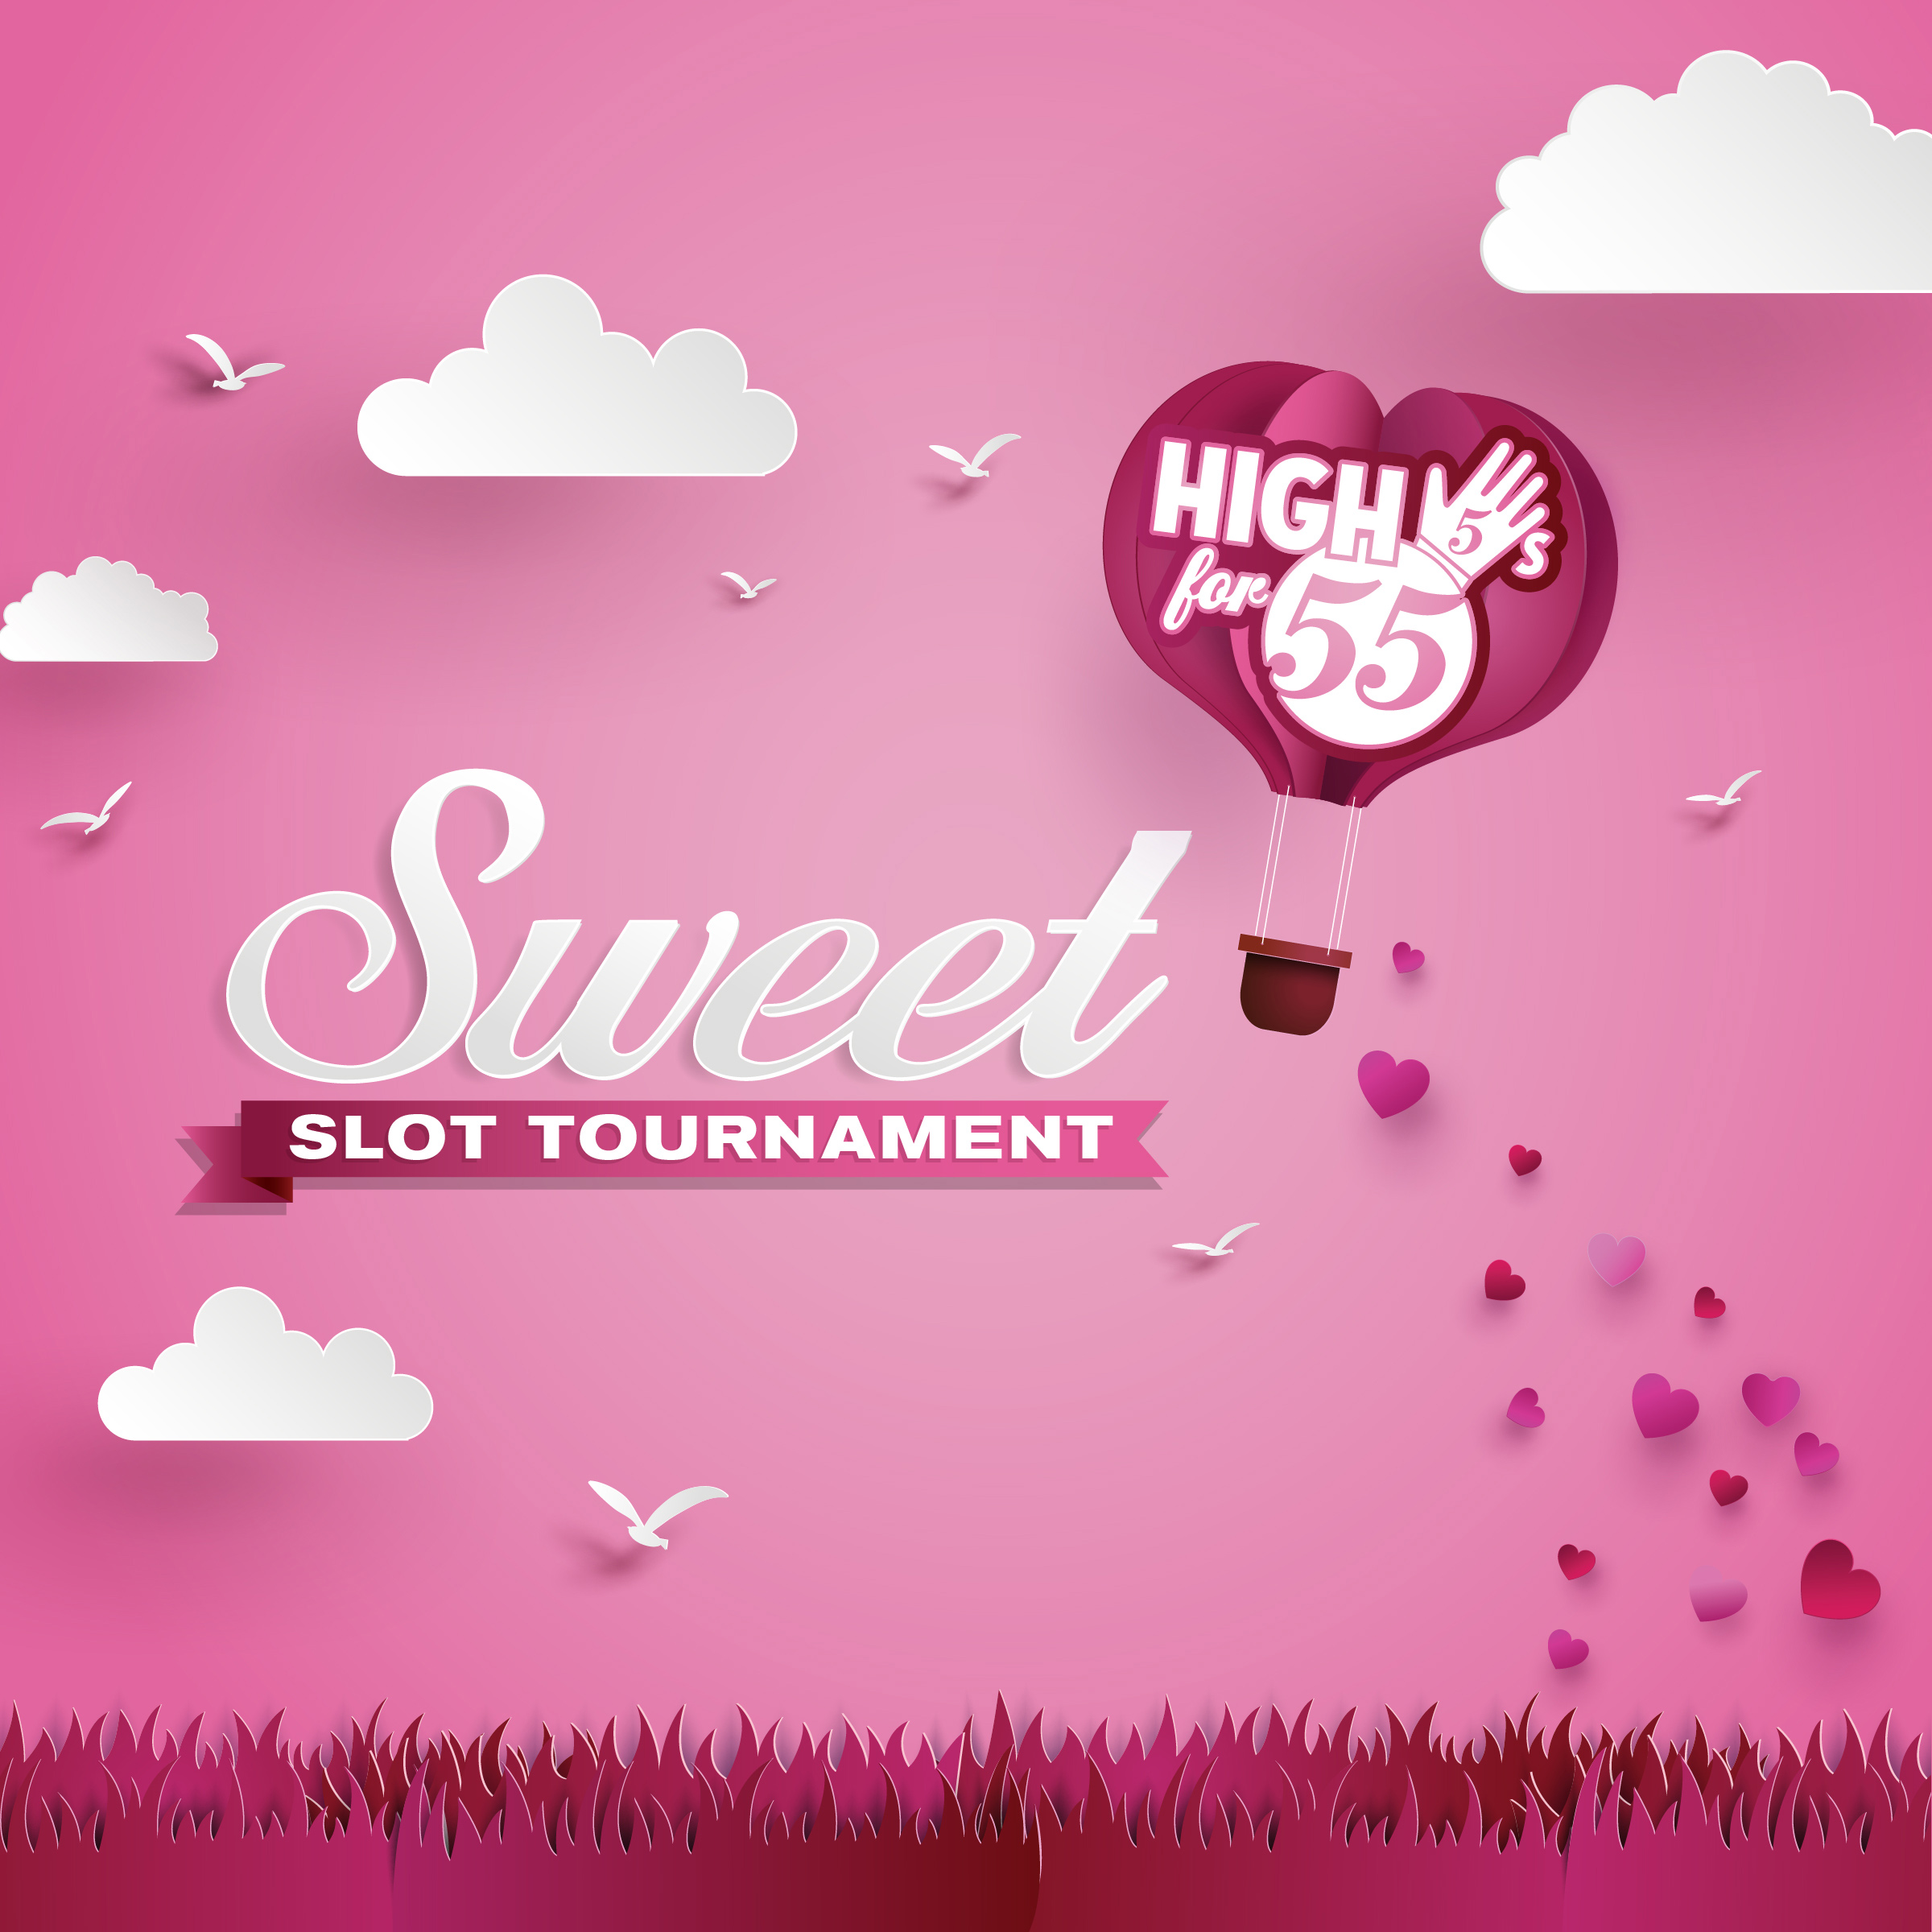 High 5's for 55 – Sweet Slot Tournament